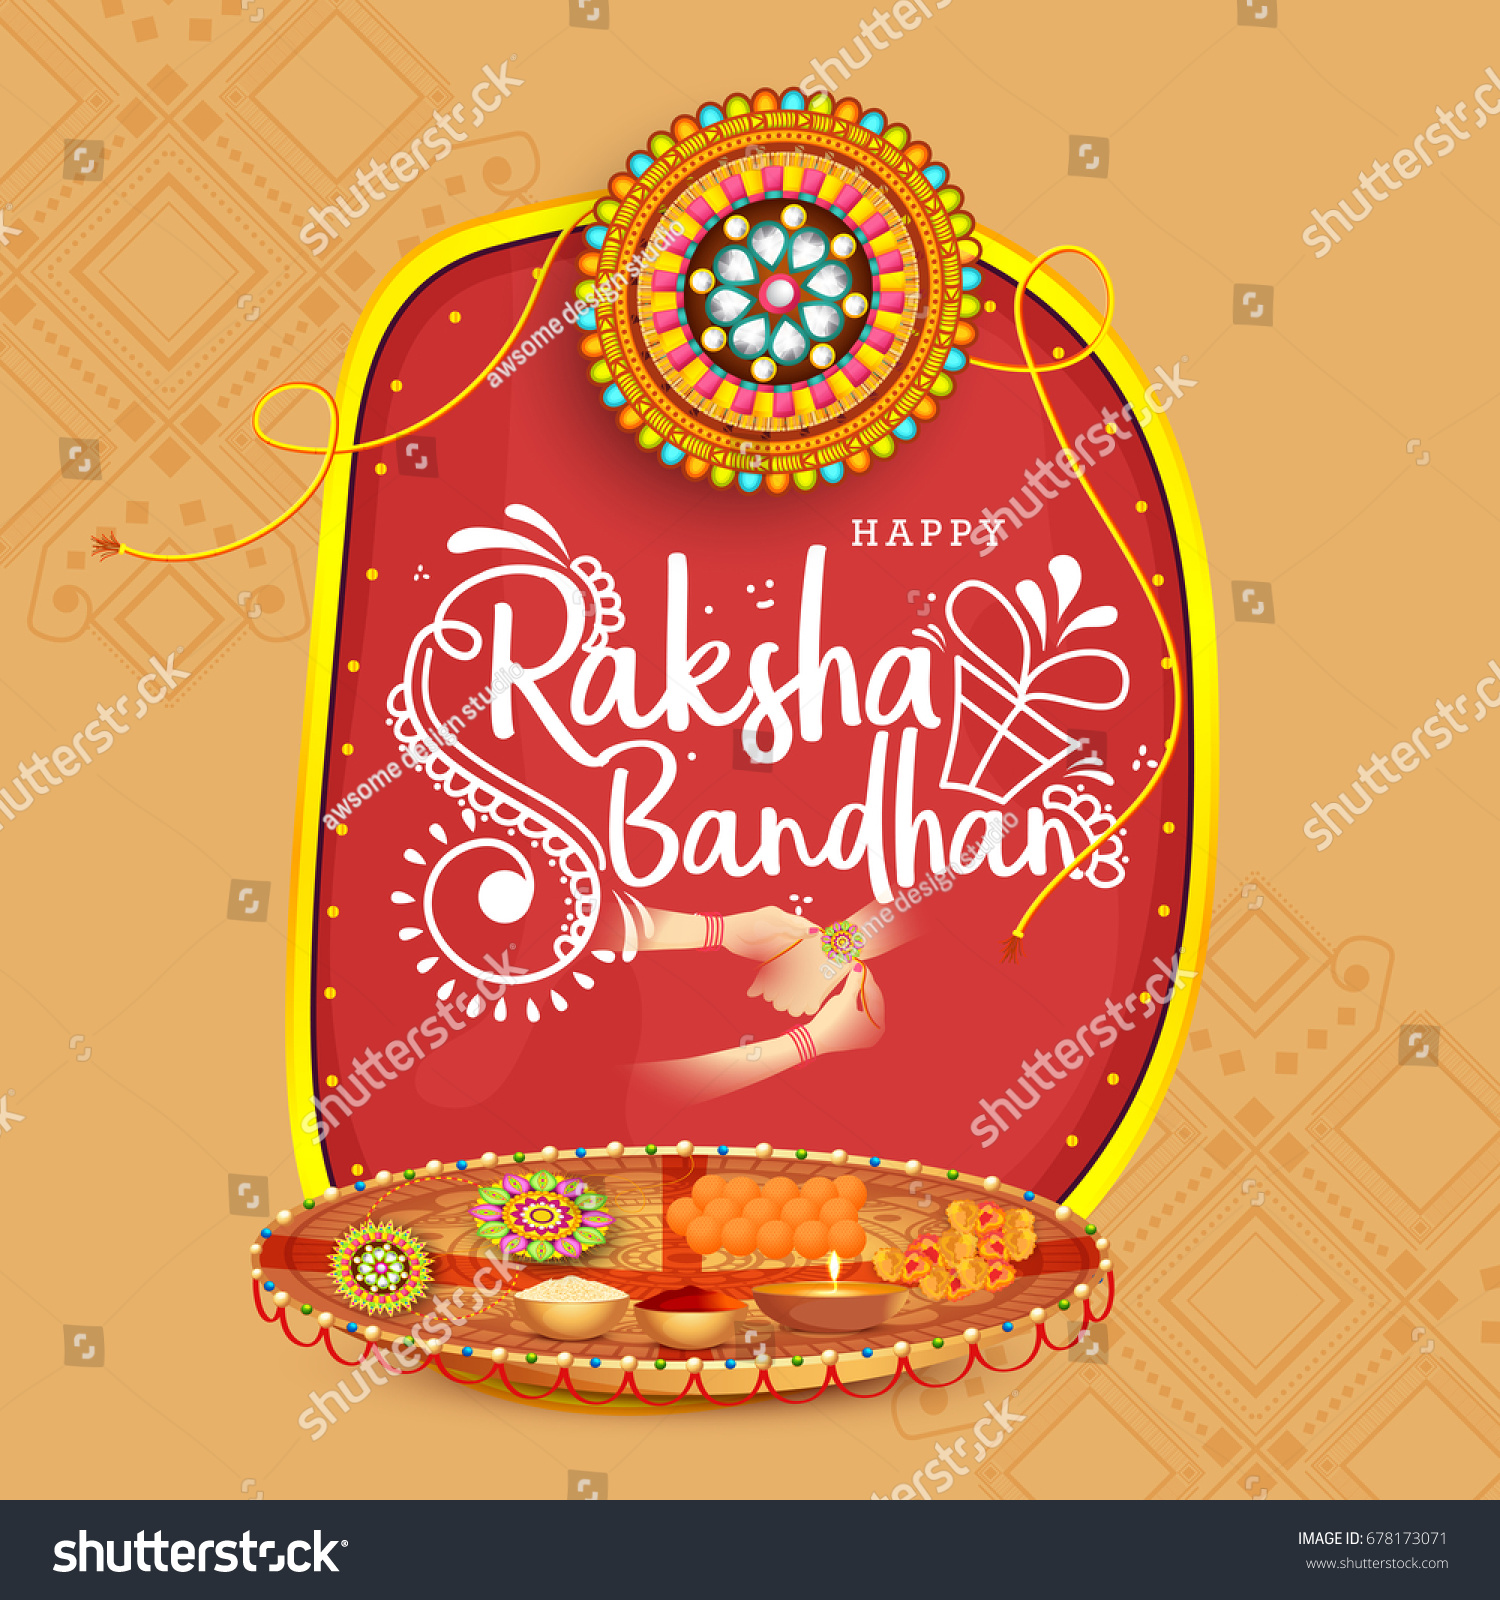 Illustrationgreeting Card Decorative Rakhi Raksha Bandhan Stock